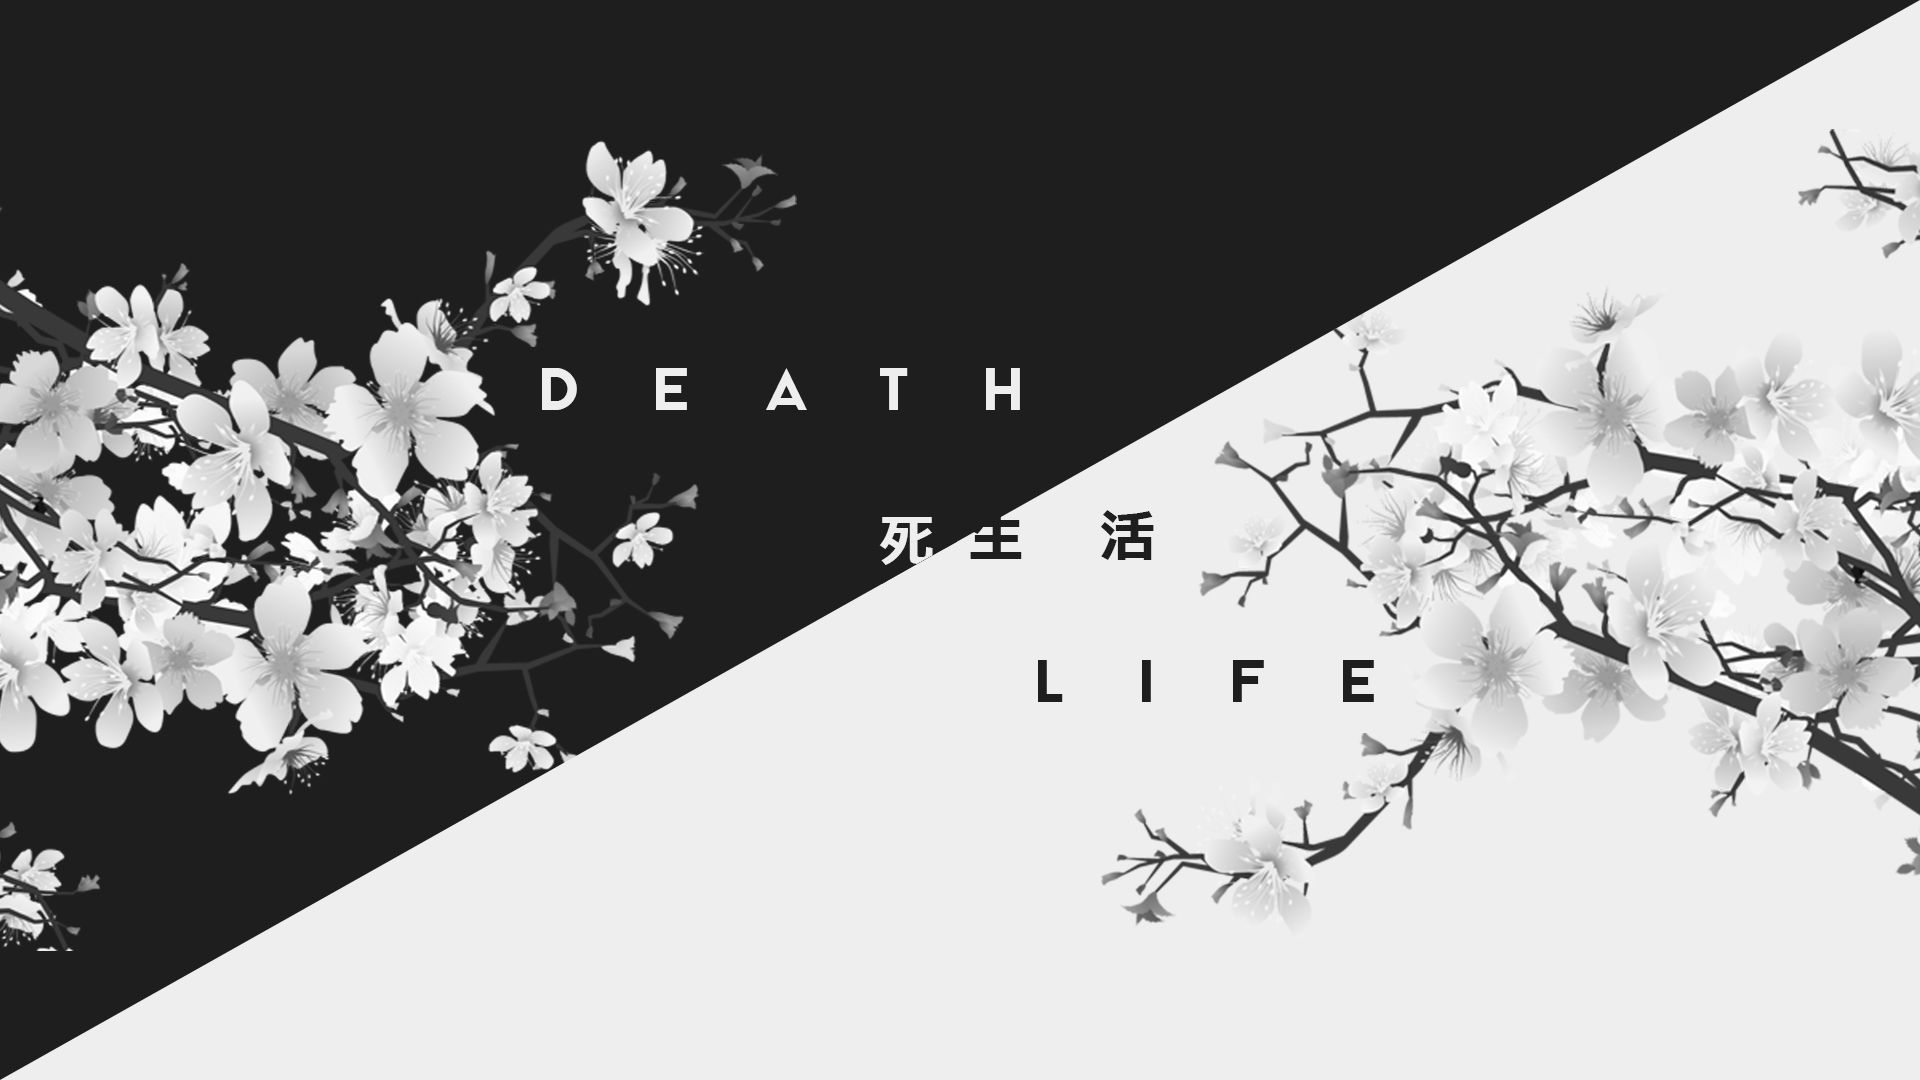 Life and Death Wallpapers   Top Life and Death Backgrounds 1920x1080